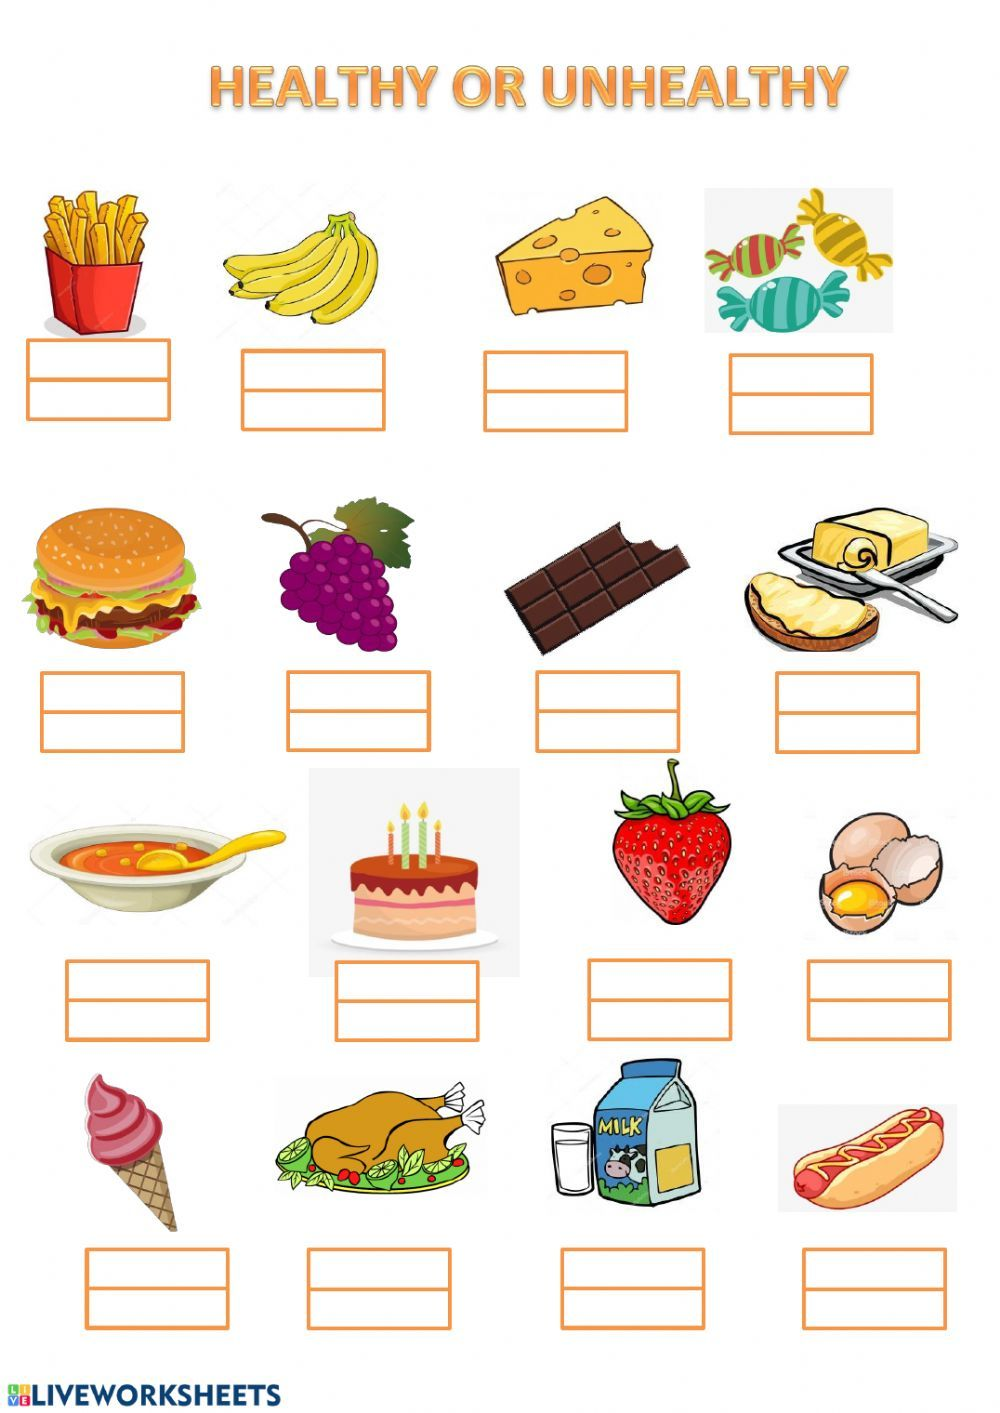 26+ Modest healthy food worksheets ideas in 2021